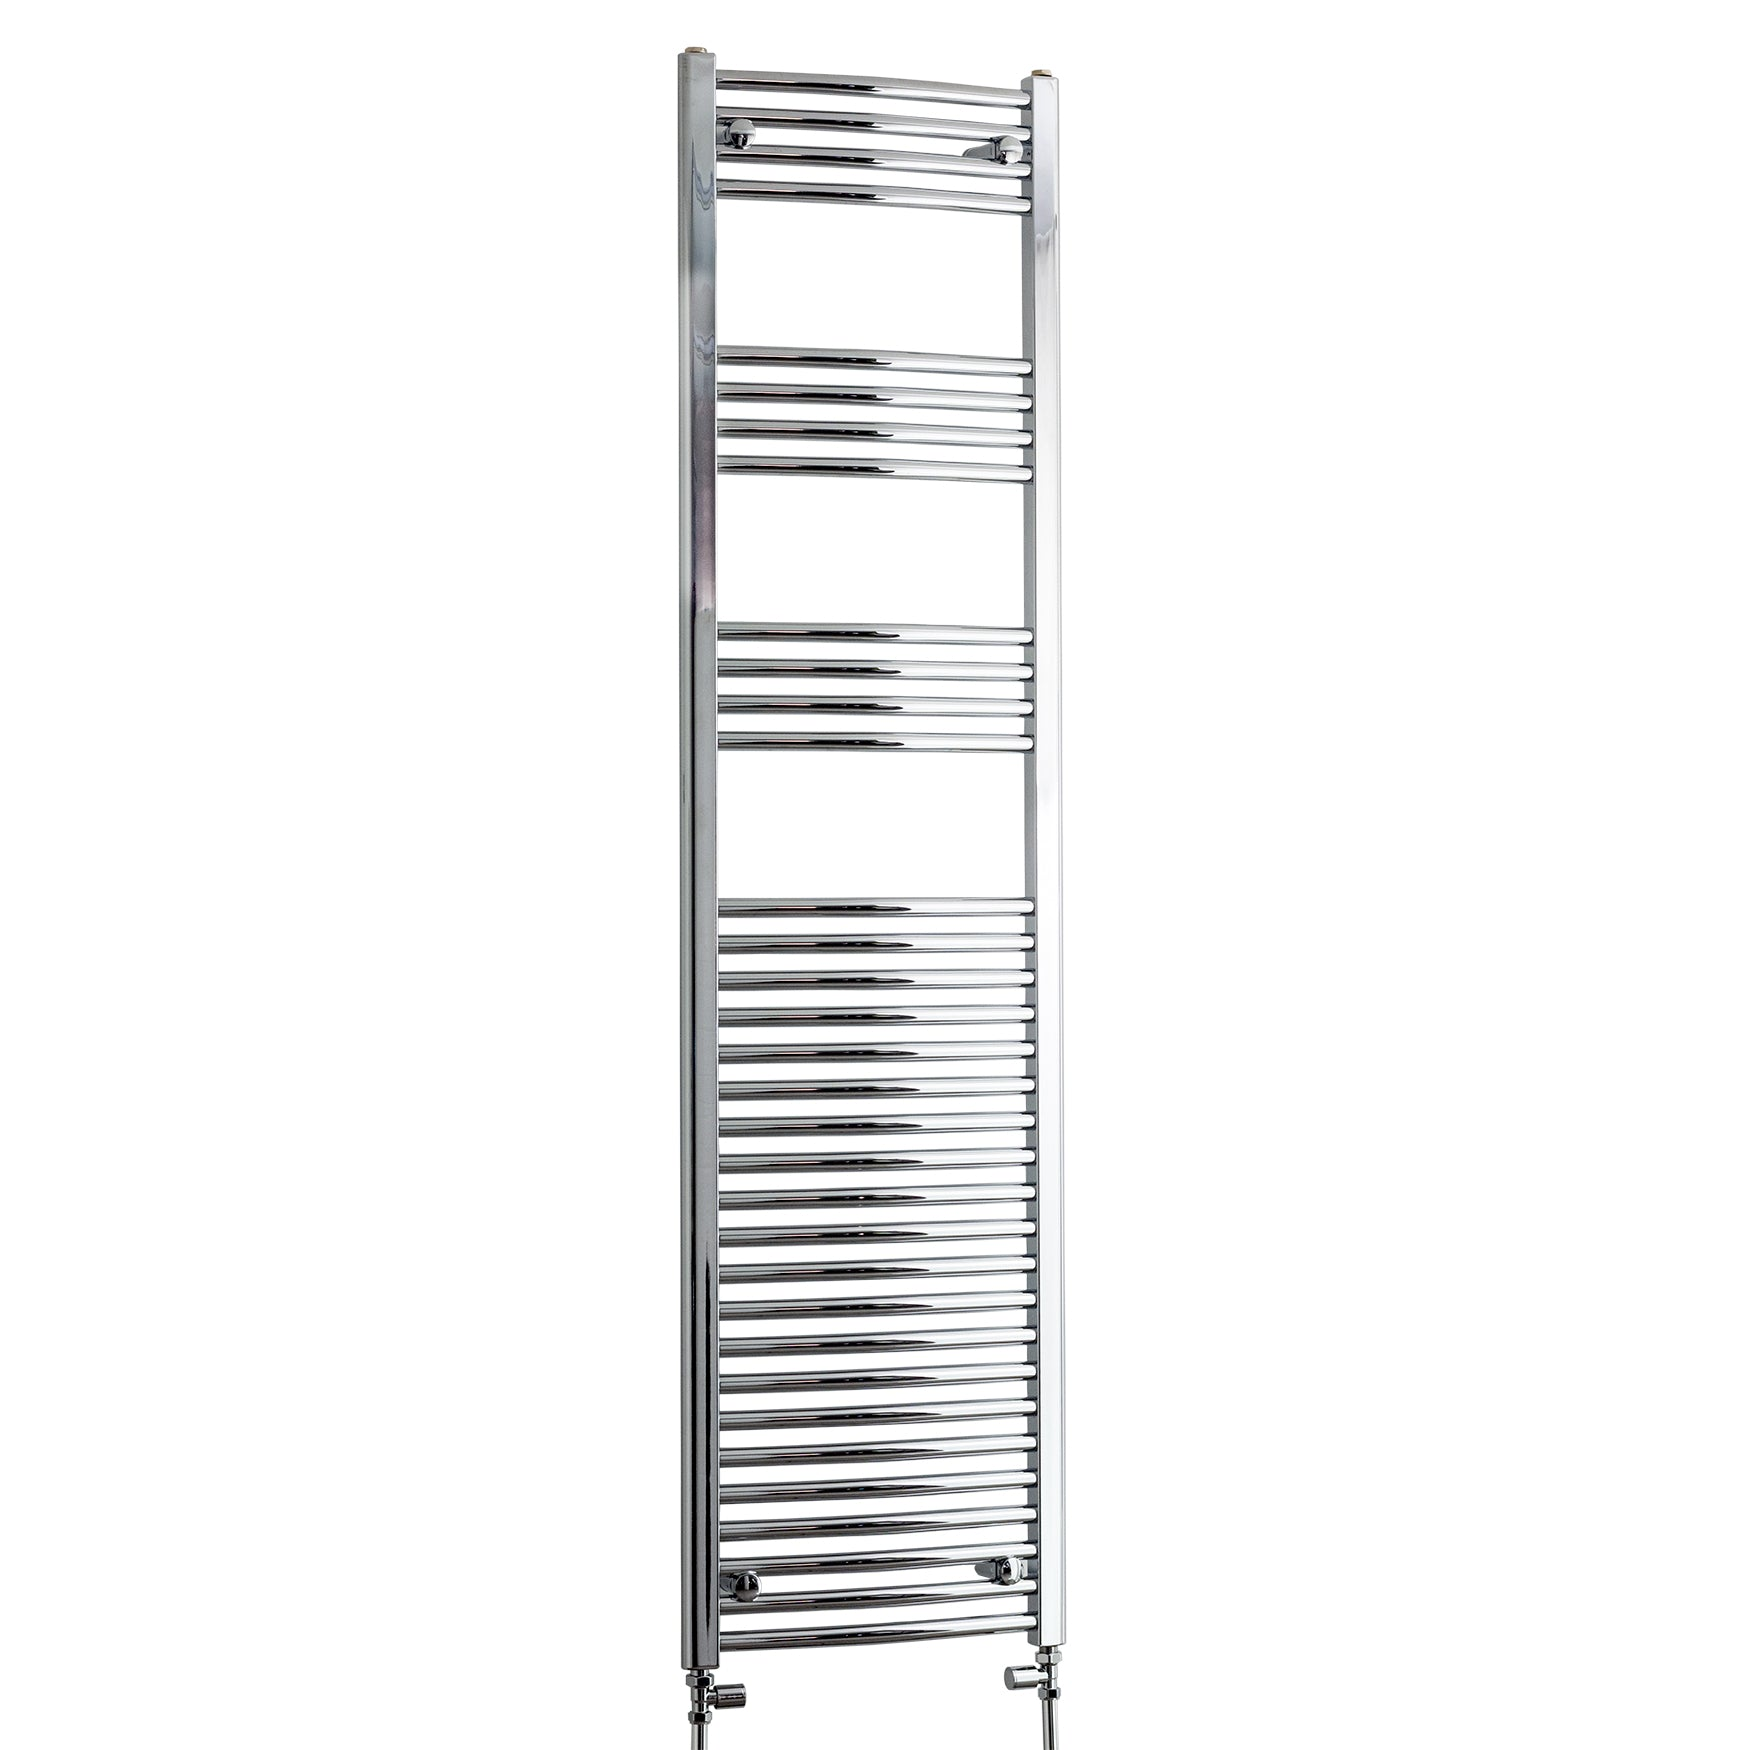 450mm Wide 1800mm High Chrome Towel Rail Radiator With Straight Valve